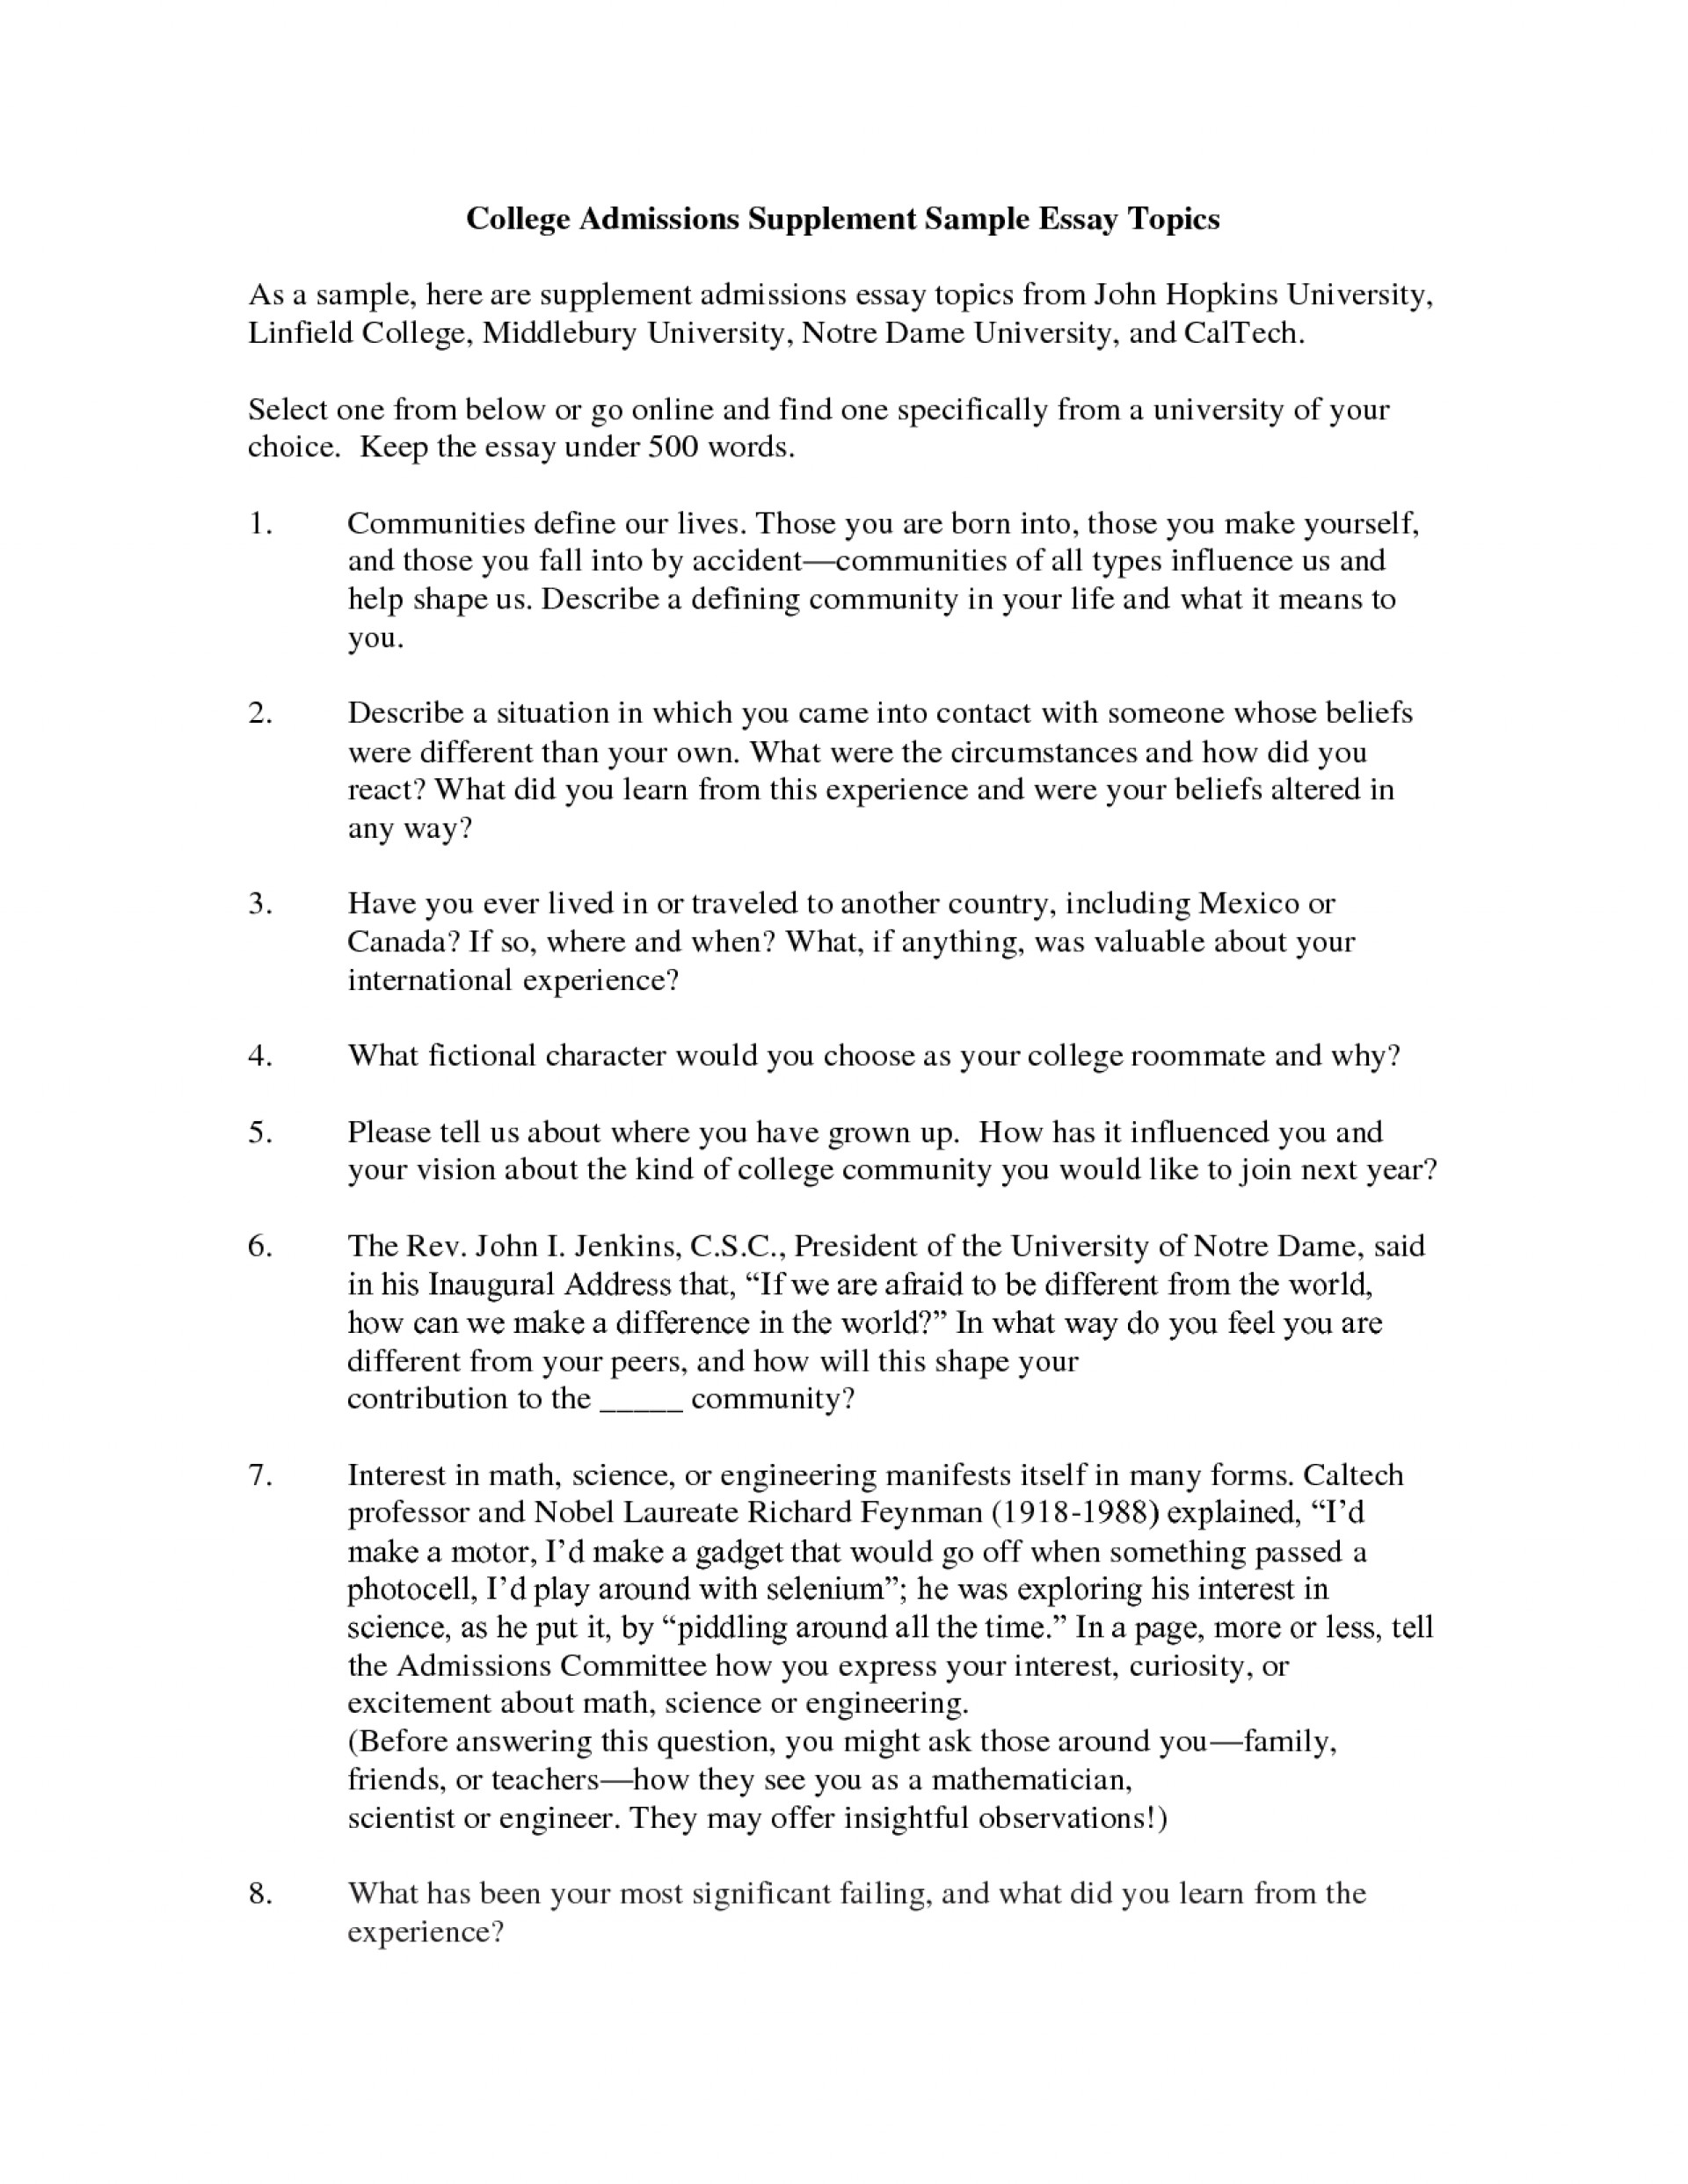 016 Interesting Essay Topics How To Start College Admission Unique For L Amazing Descriptive Write About Grade 8 In Urdu Synthesis 1920